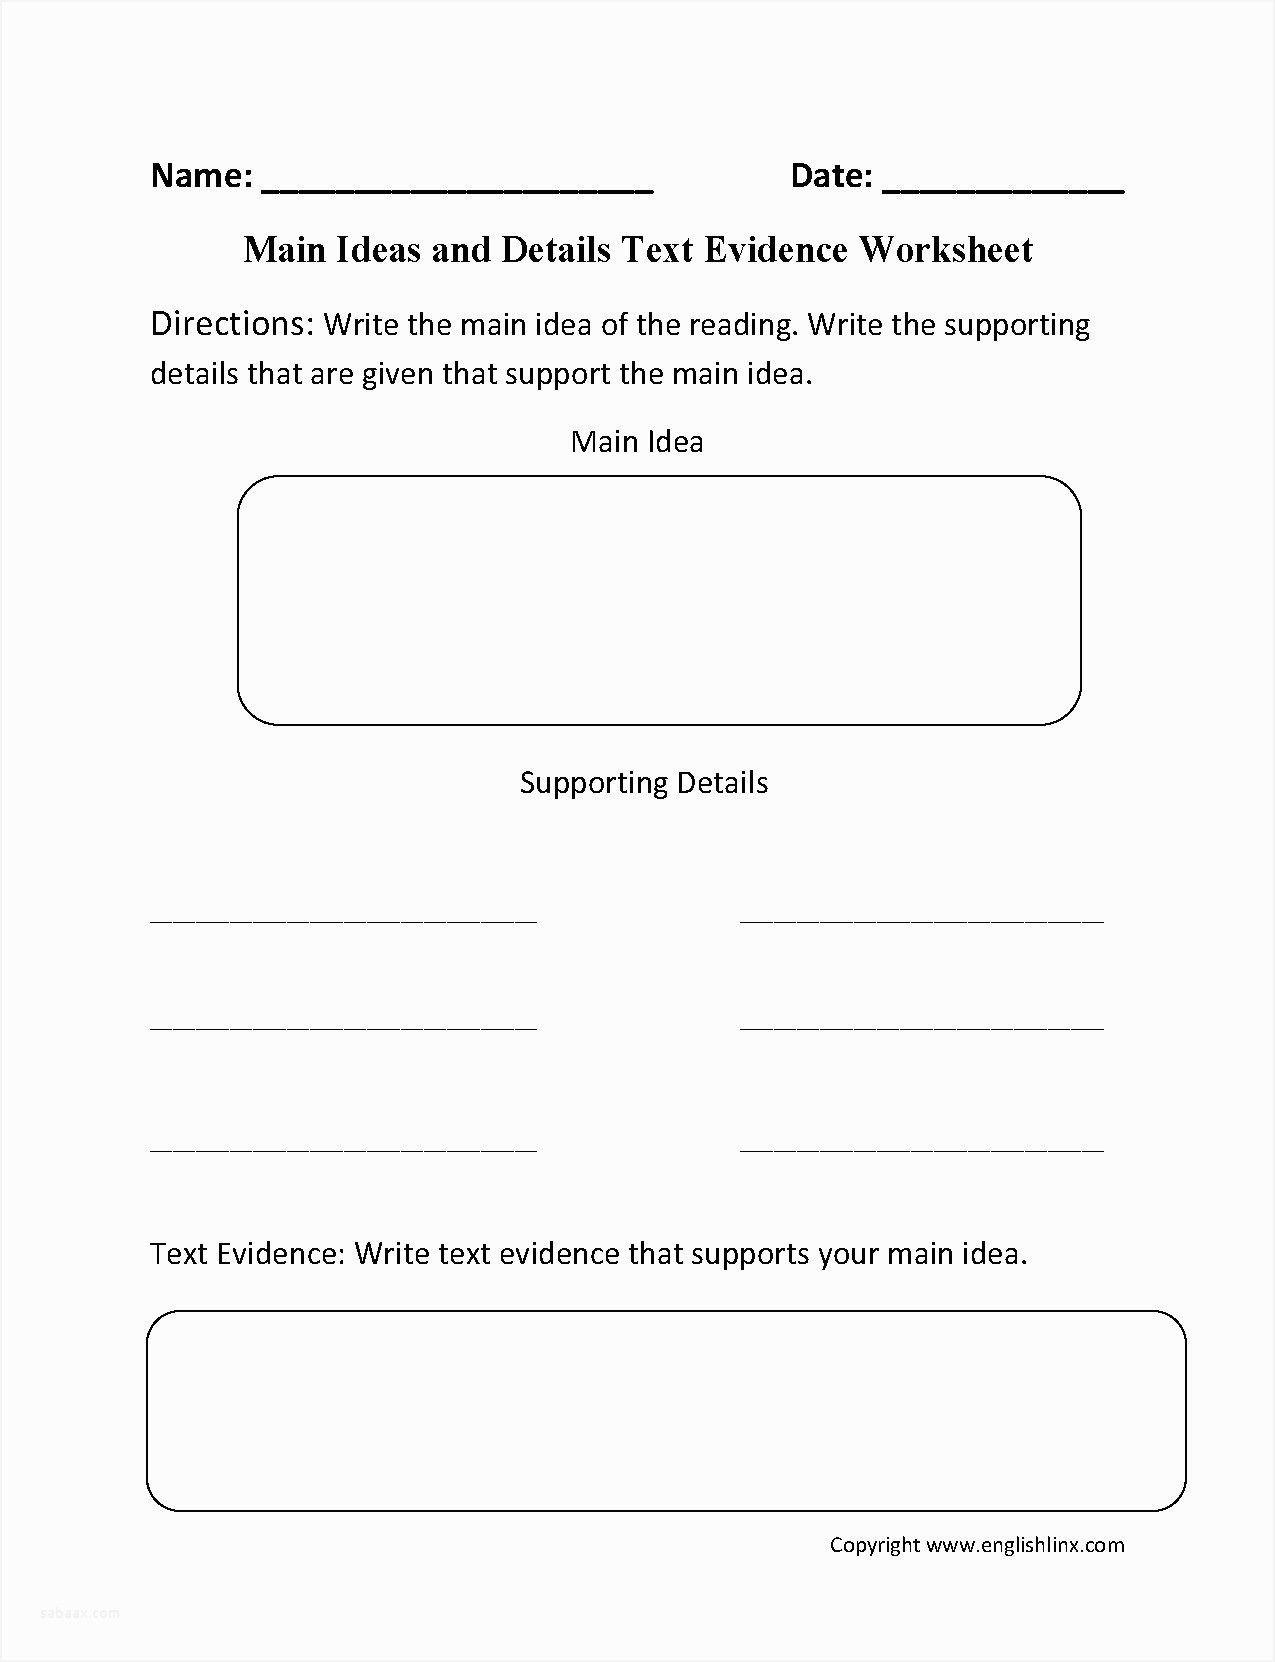 Theme Worksheets 5th Grade Story Identifying theme Worksheet